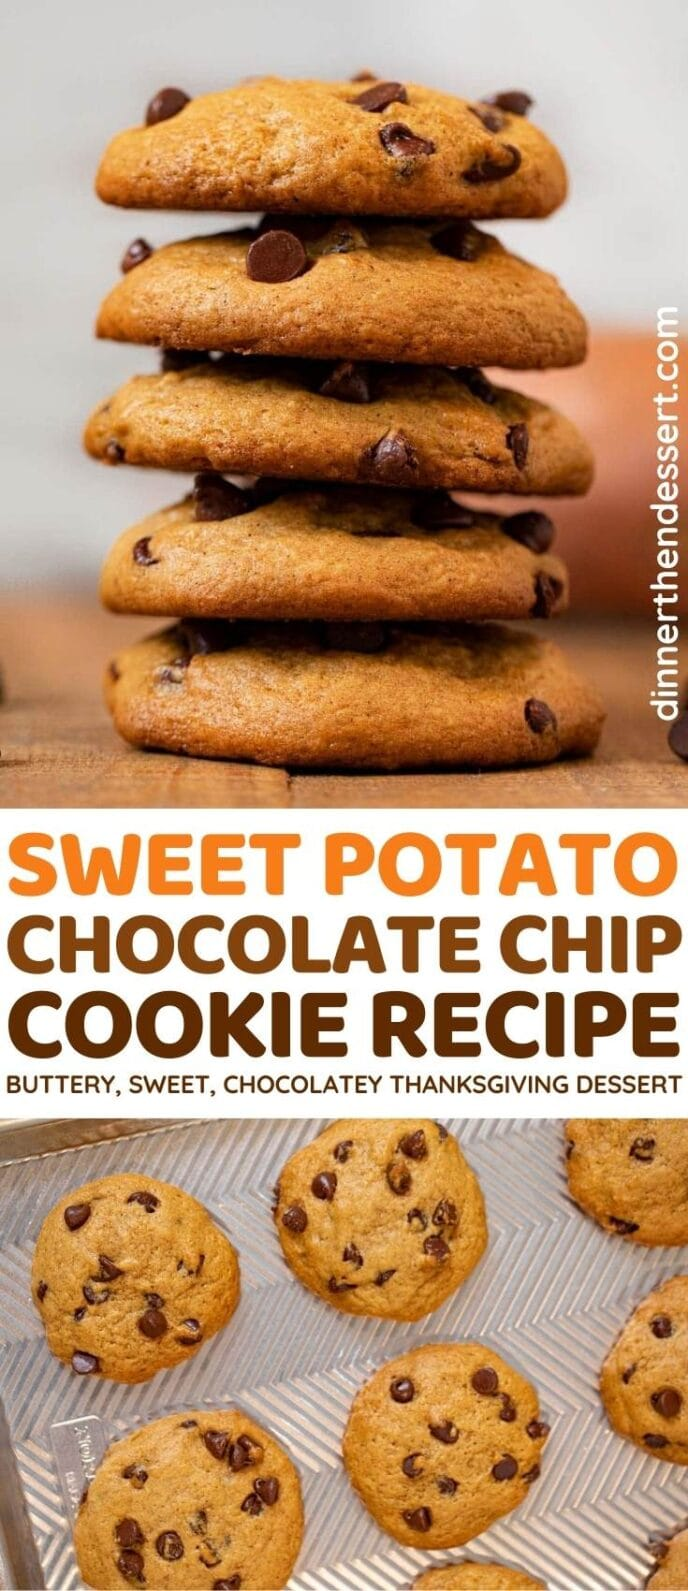 Sweet Potato Chocolate Chip Cookies collage